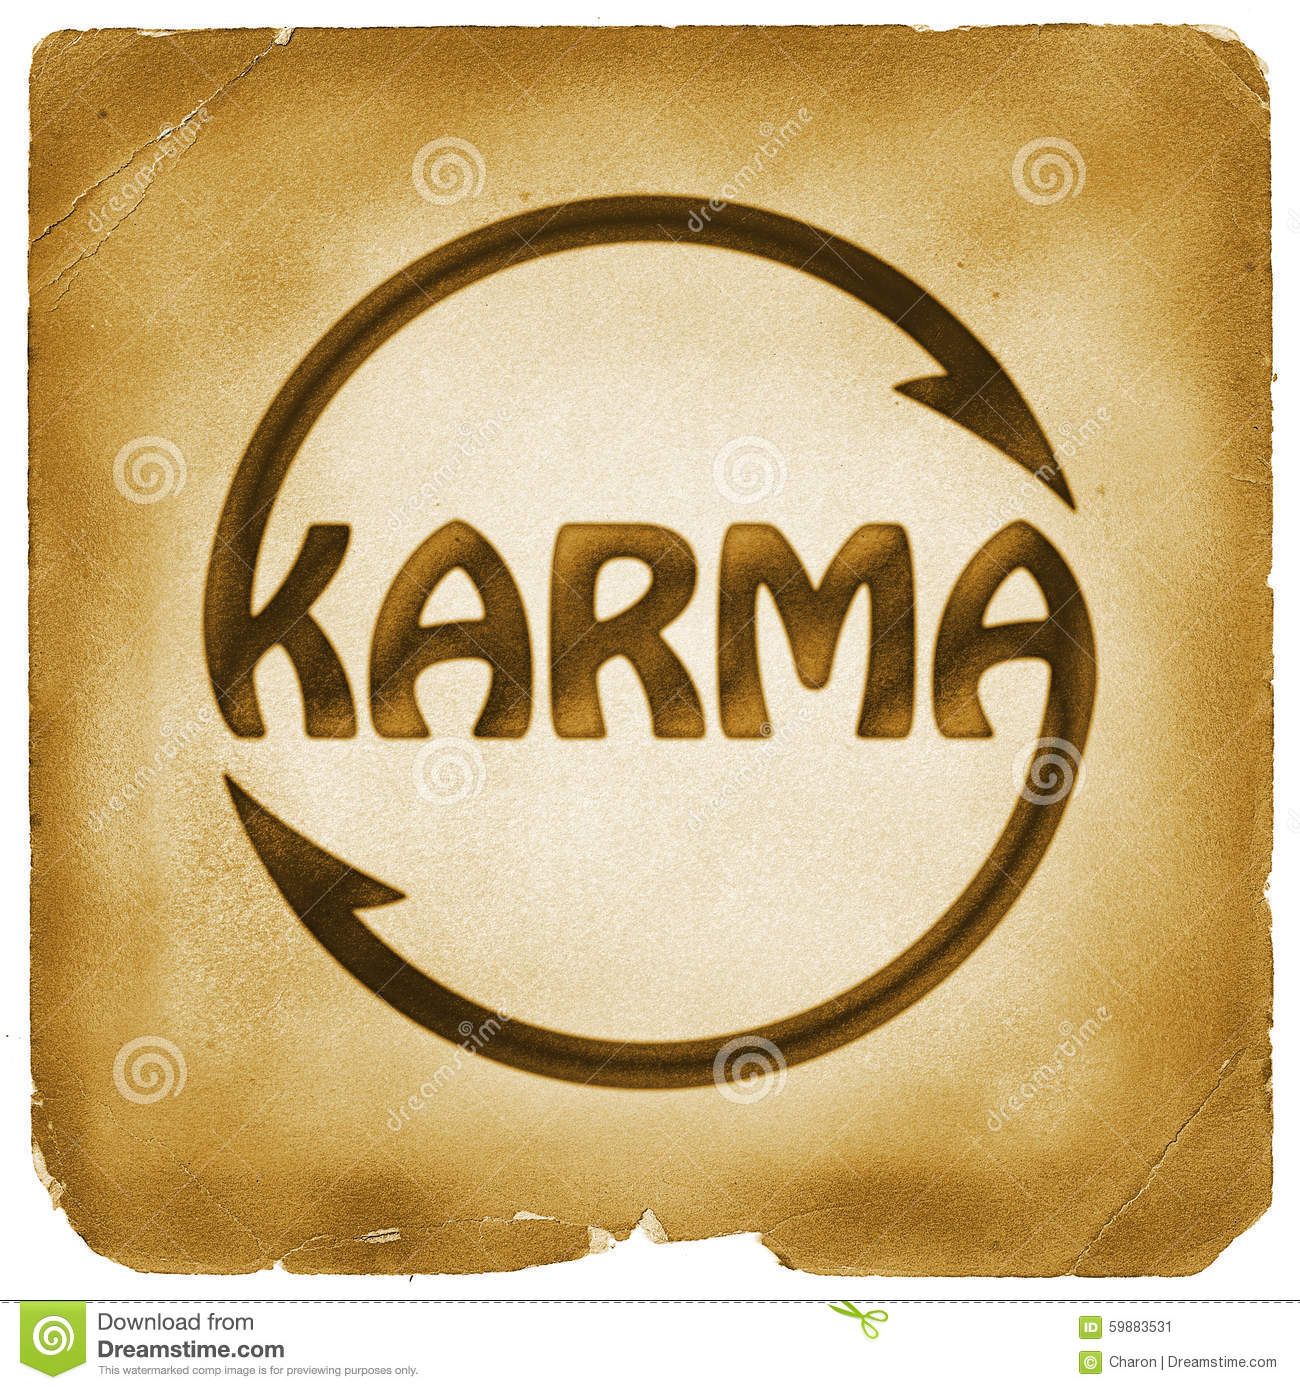 karma essay The concepts of varna and karma are each closely related to the eastern civilization religions of hinduism, buddhism, and jainism varna and karma go hand in hand with each other to explain themselves, as does karma with the doctrine of reincarnation.